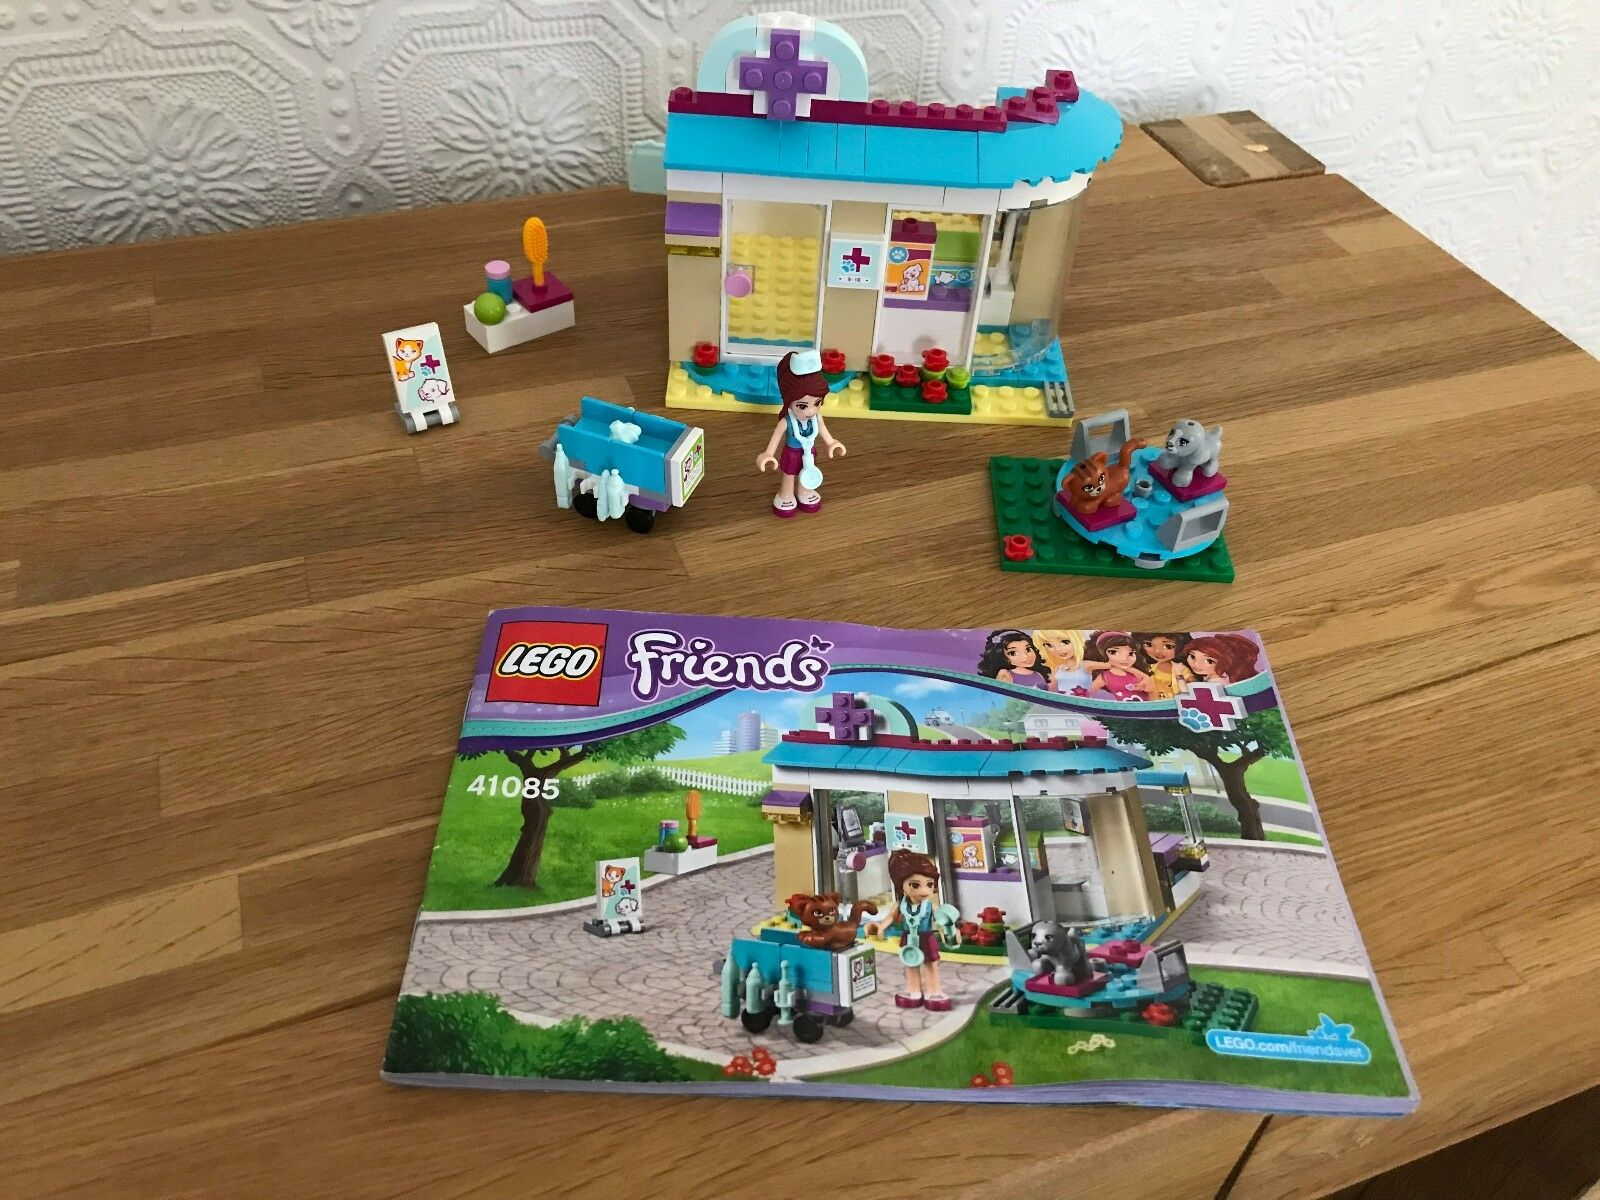 Lego Friends 41085 - Vet Clinic, 100% Complete, Instructions, No box